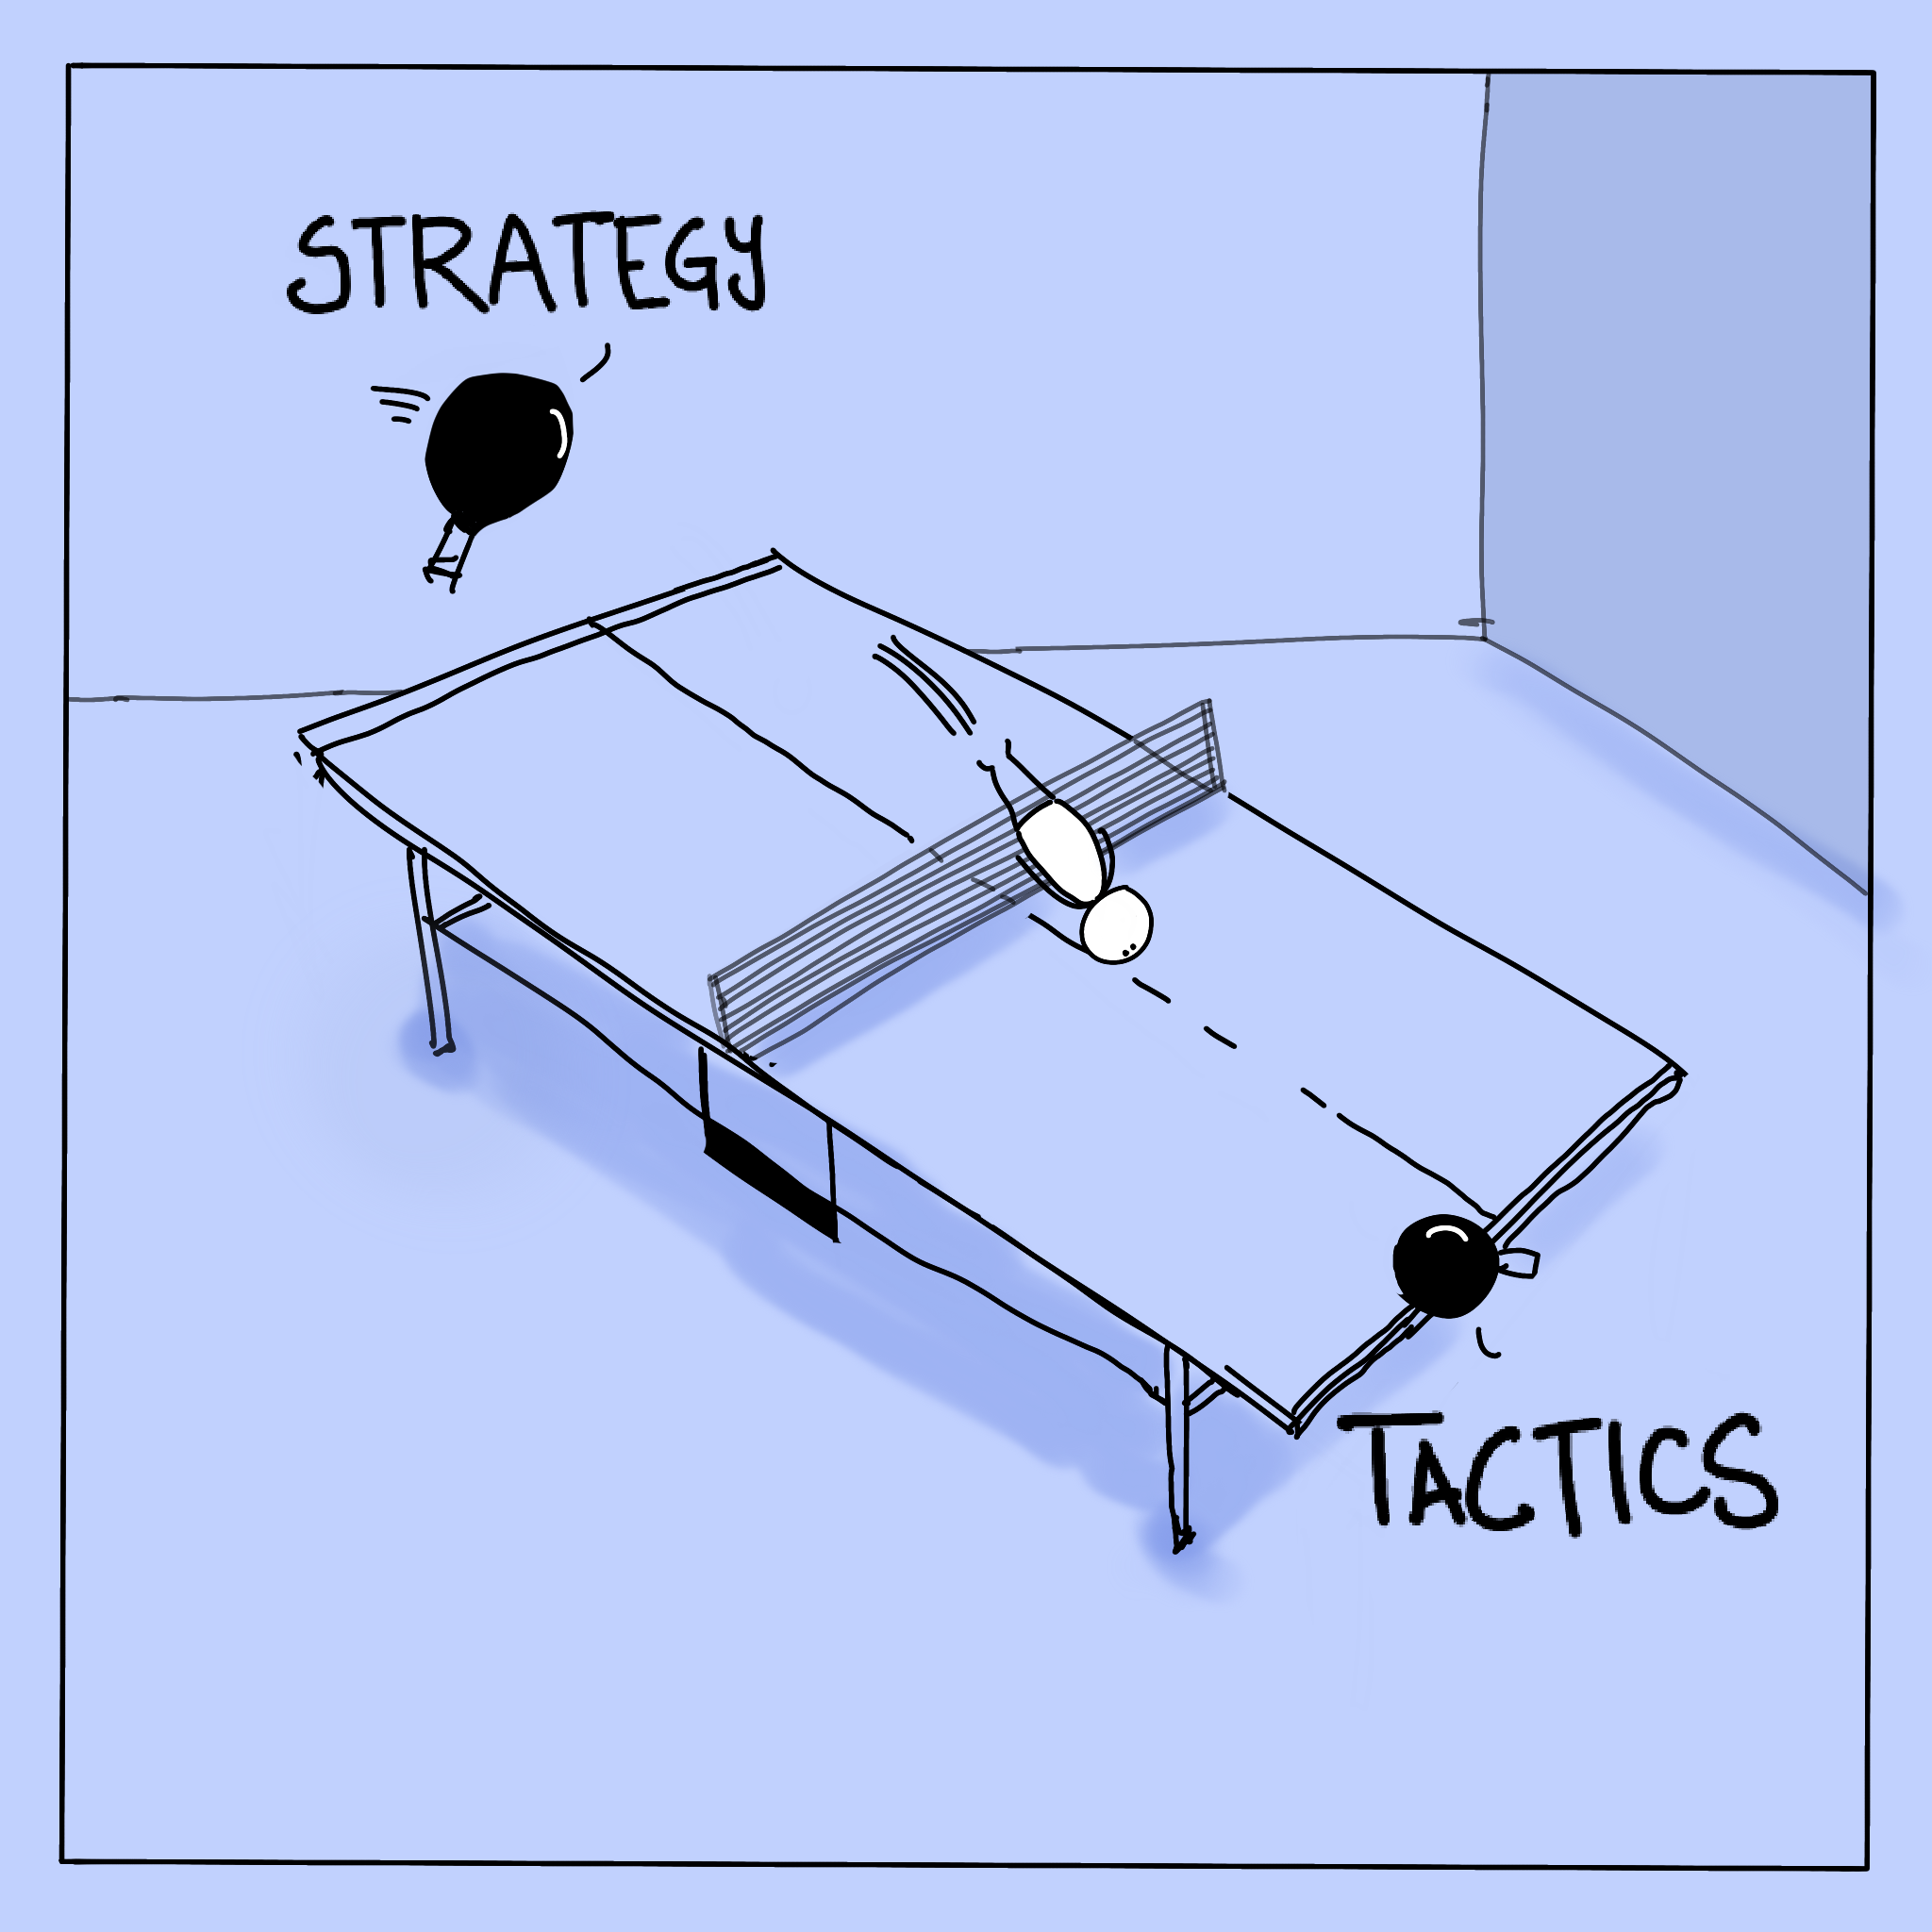 Cartoon of pingpong table with a person being batted around.